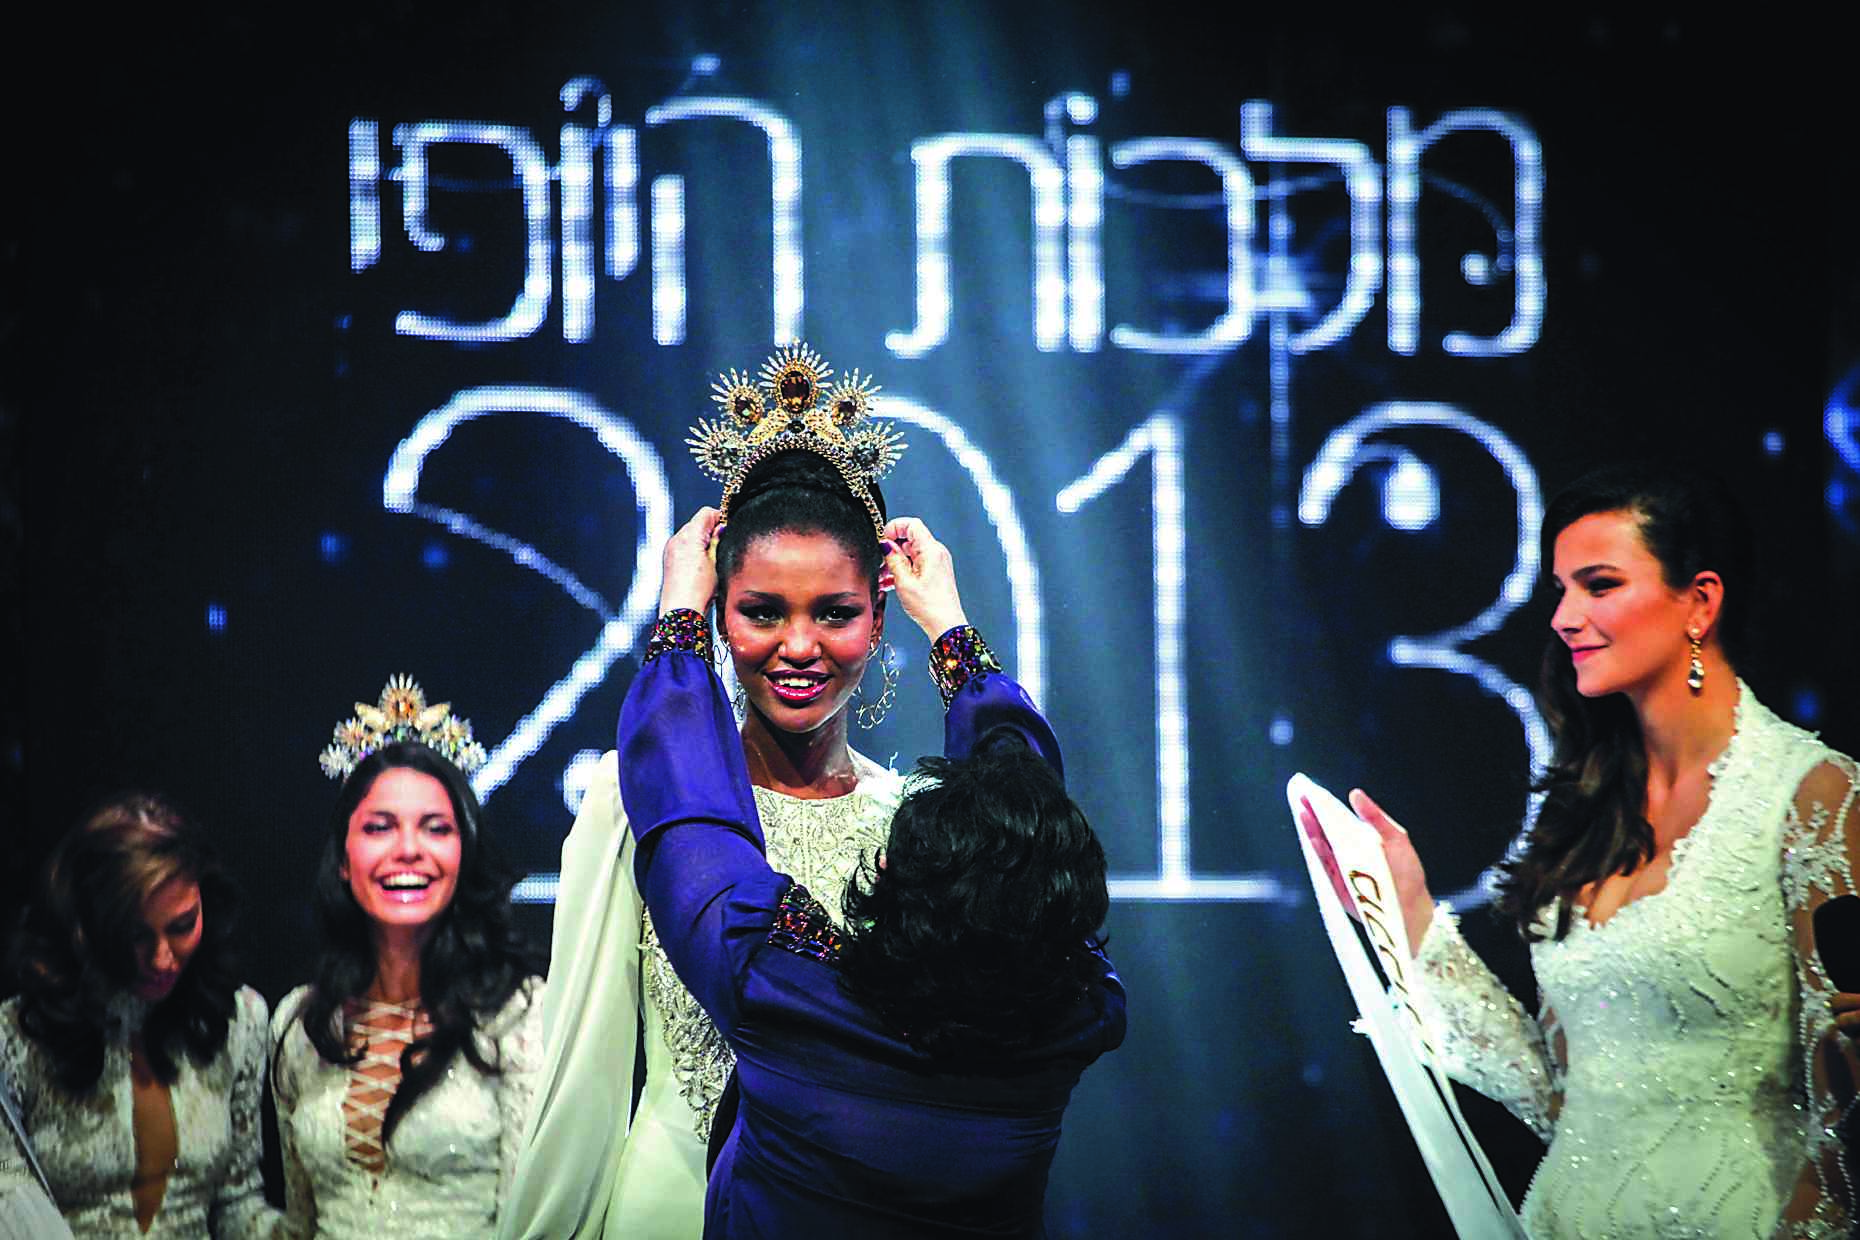 Yityish Aynaw a 21 year old Ethiopian-Israeli woman Ethiopian-Israeli woman won Israel's national beauty pageant and is the first Ethipian to win the pageant